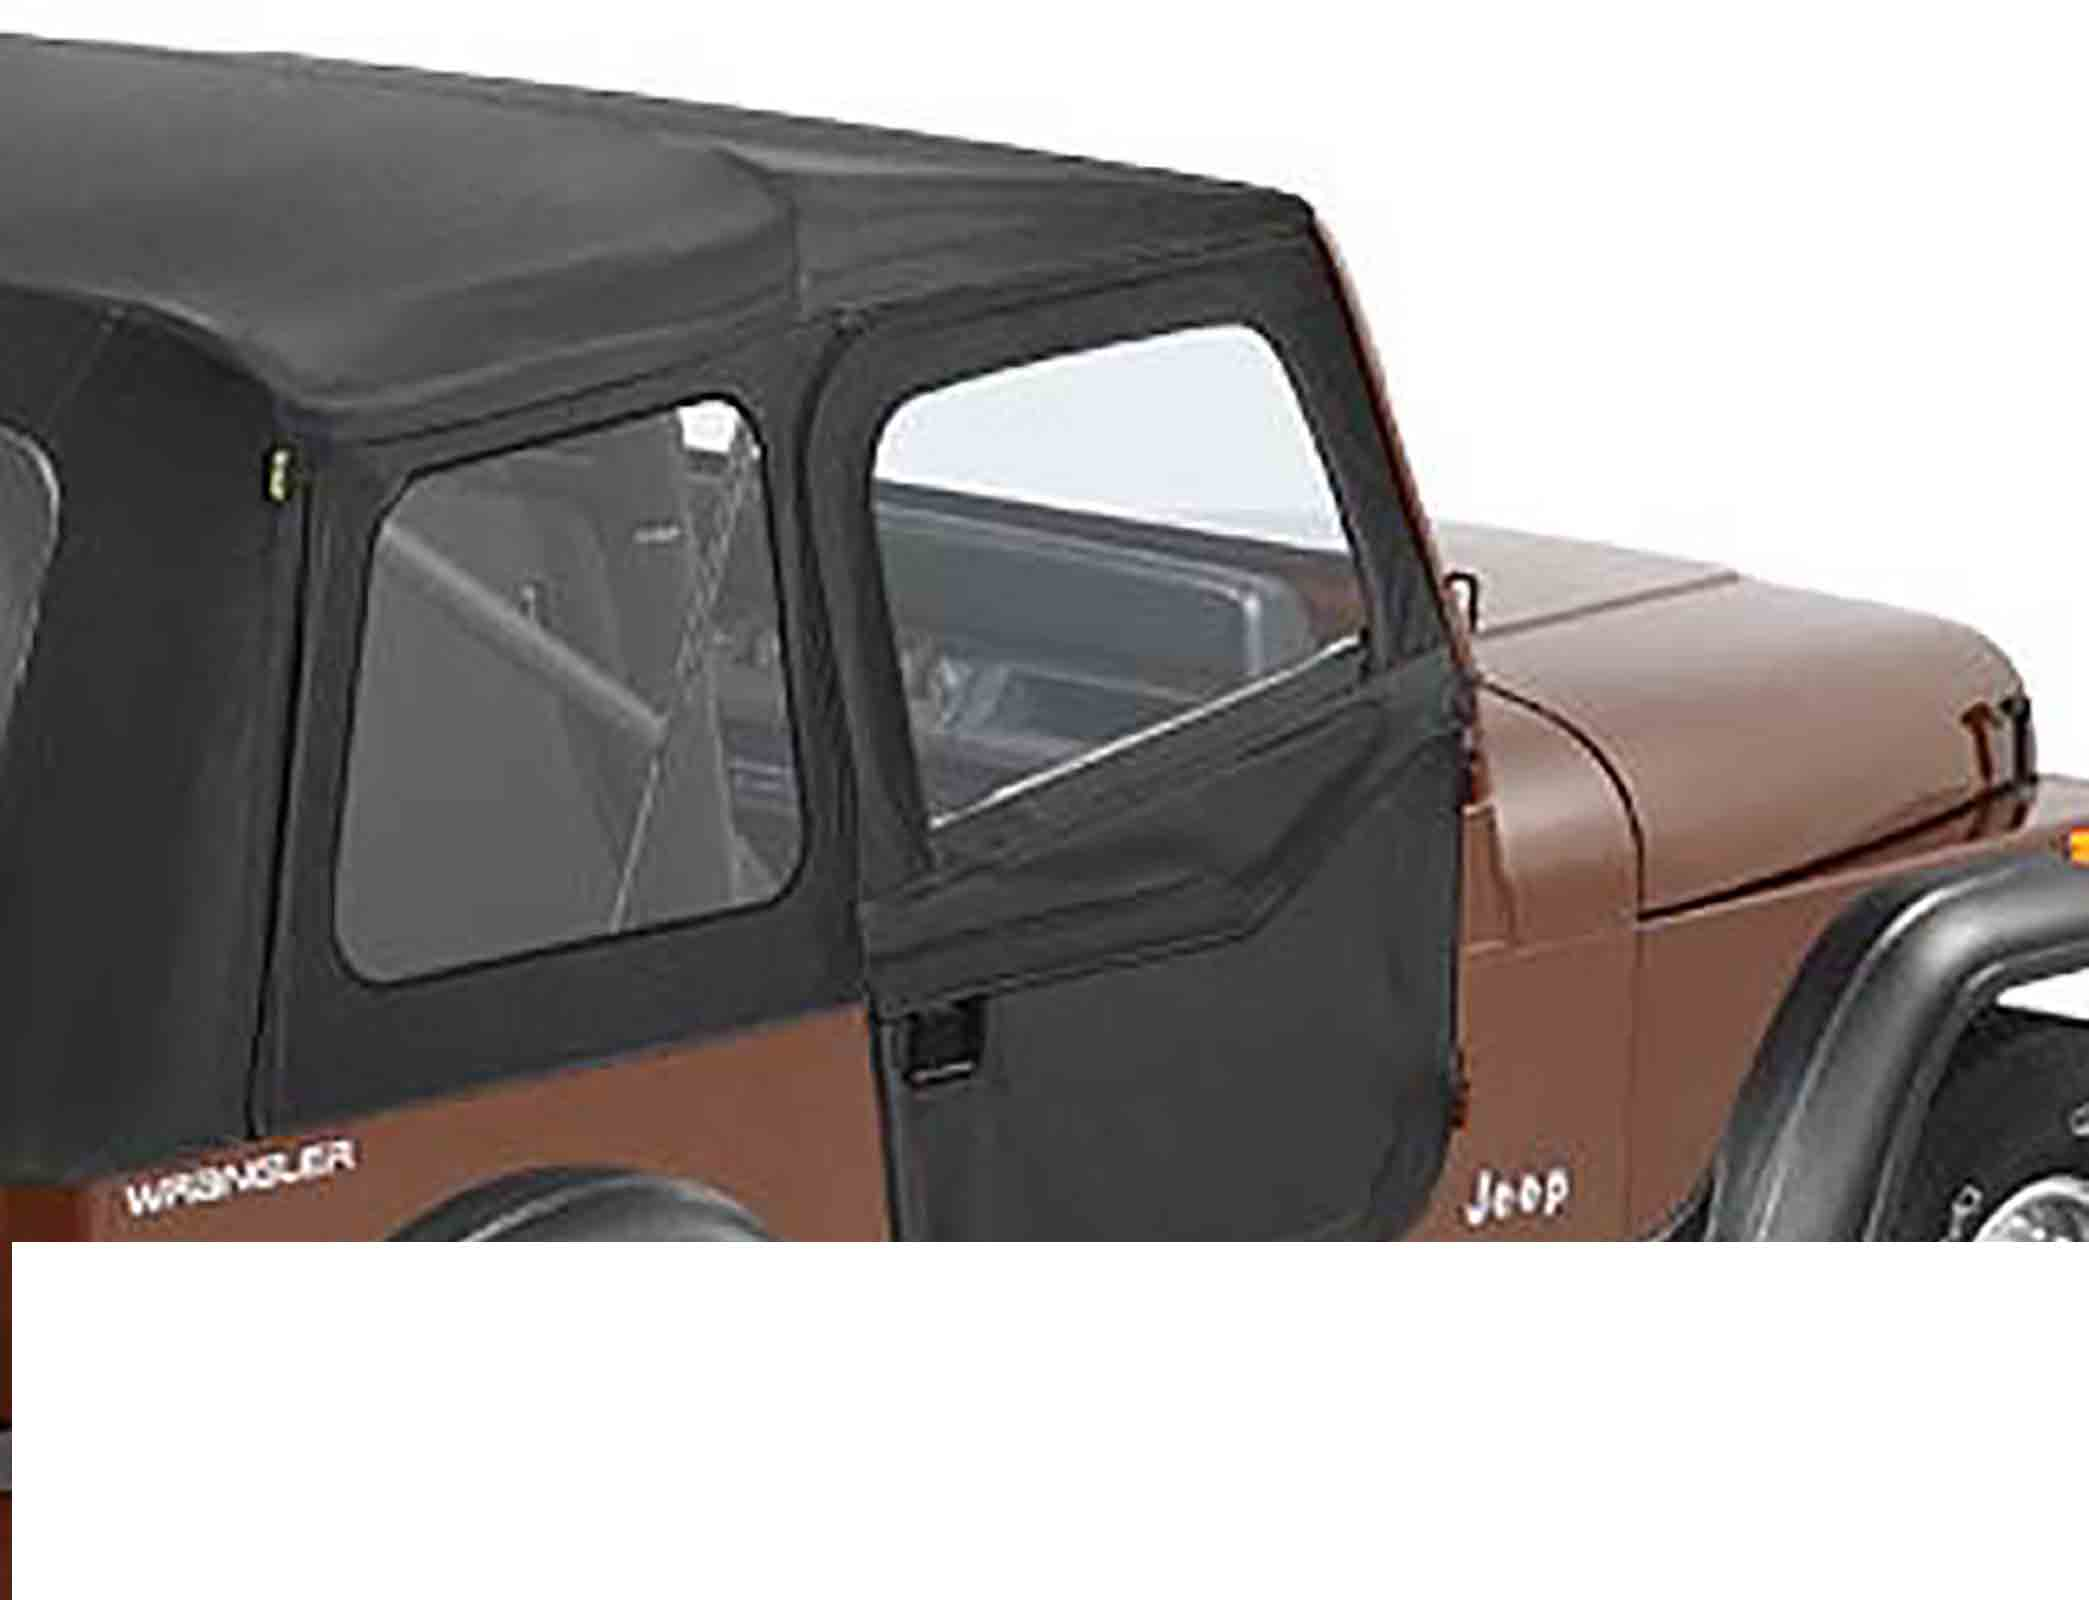 Porte divisibili jeep cj7 81 86 wrangler yj 87 95 colori: black denim ricambi jeep